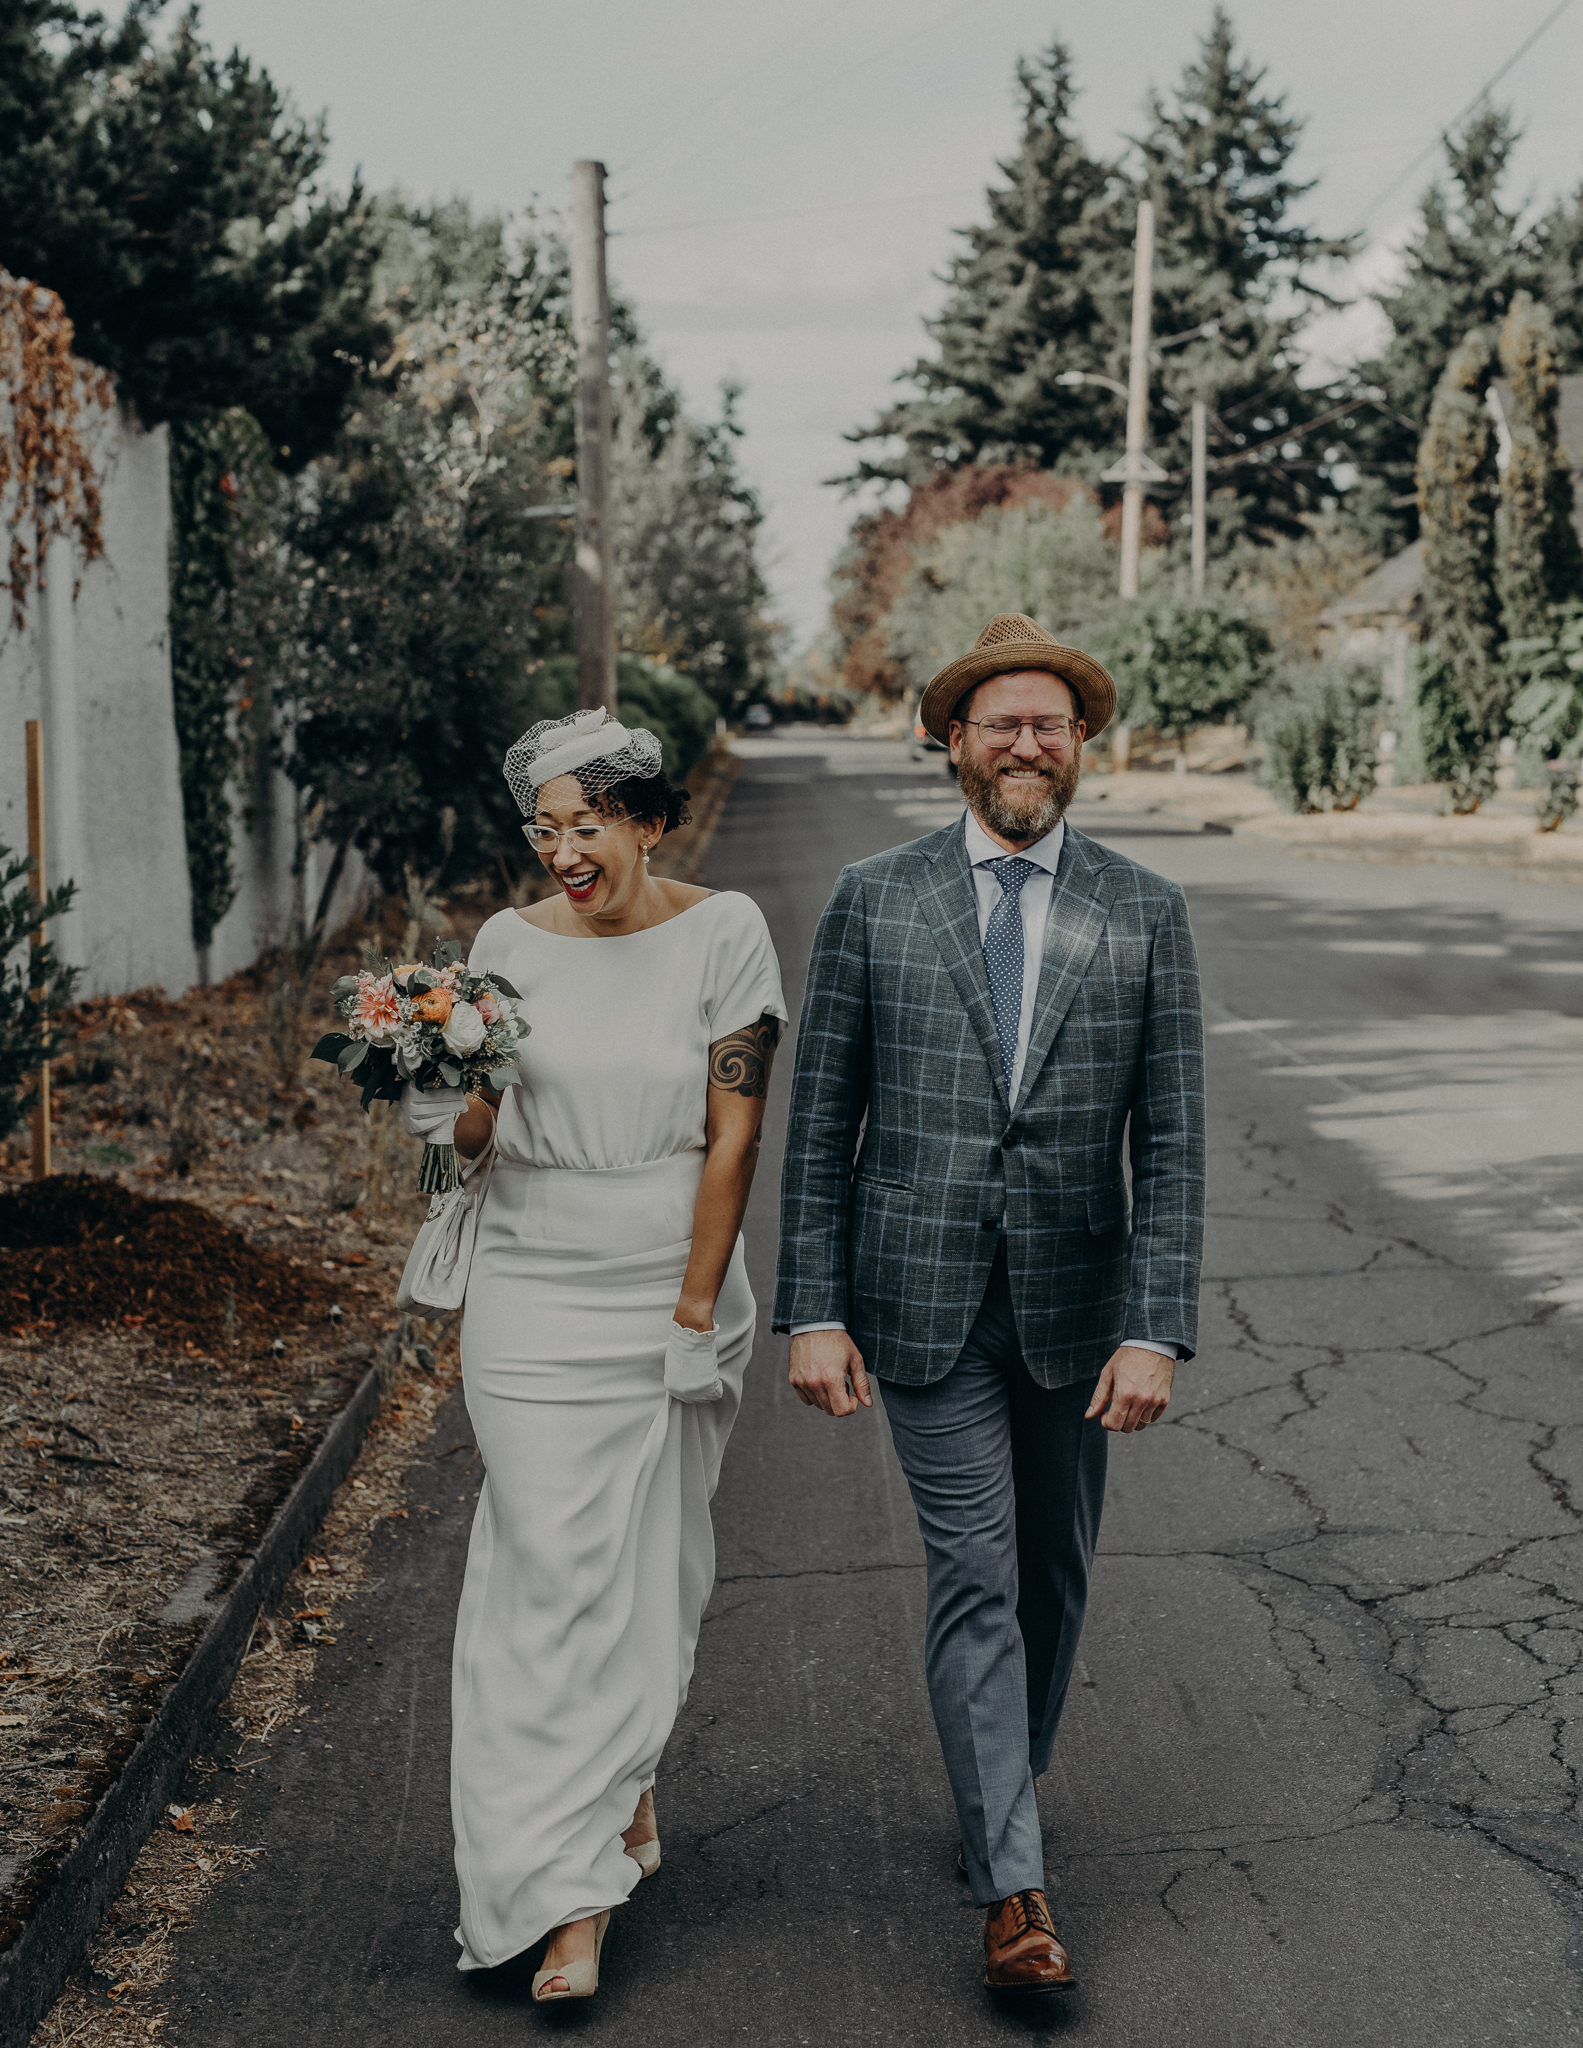 Portland Elopement Photographer - L.A. Wedding Elopement Photographer - IsaiahAndTaylor.com-1.jpg